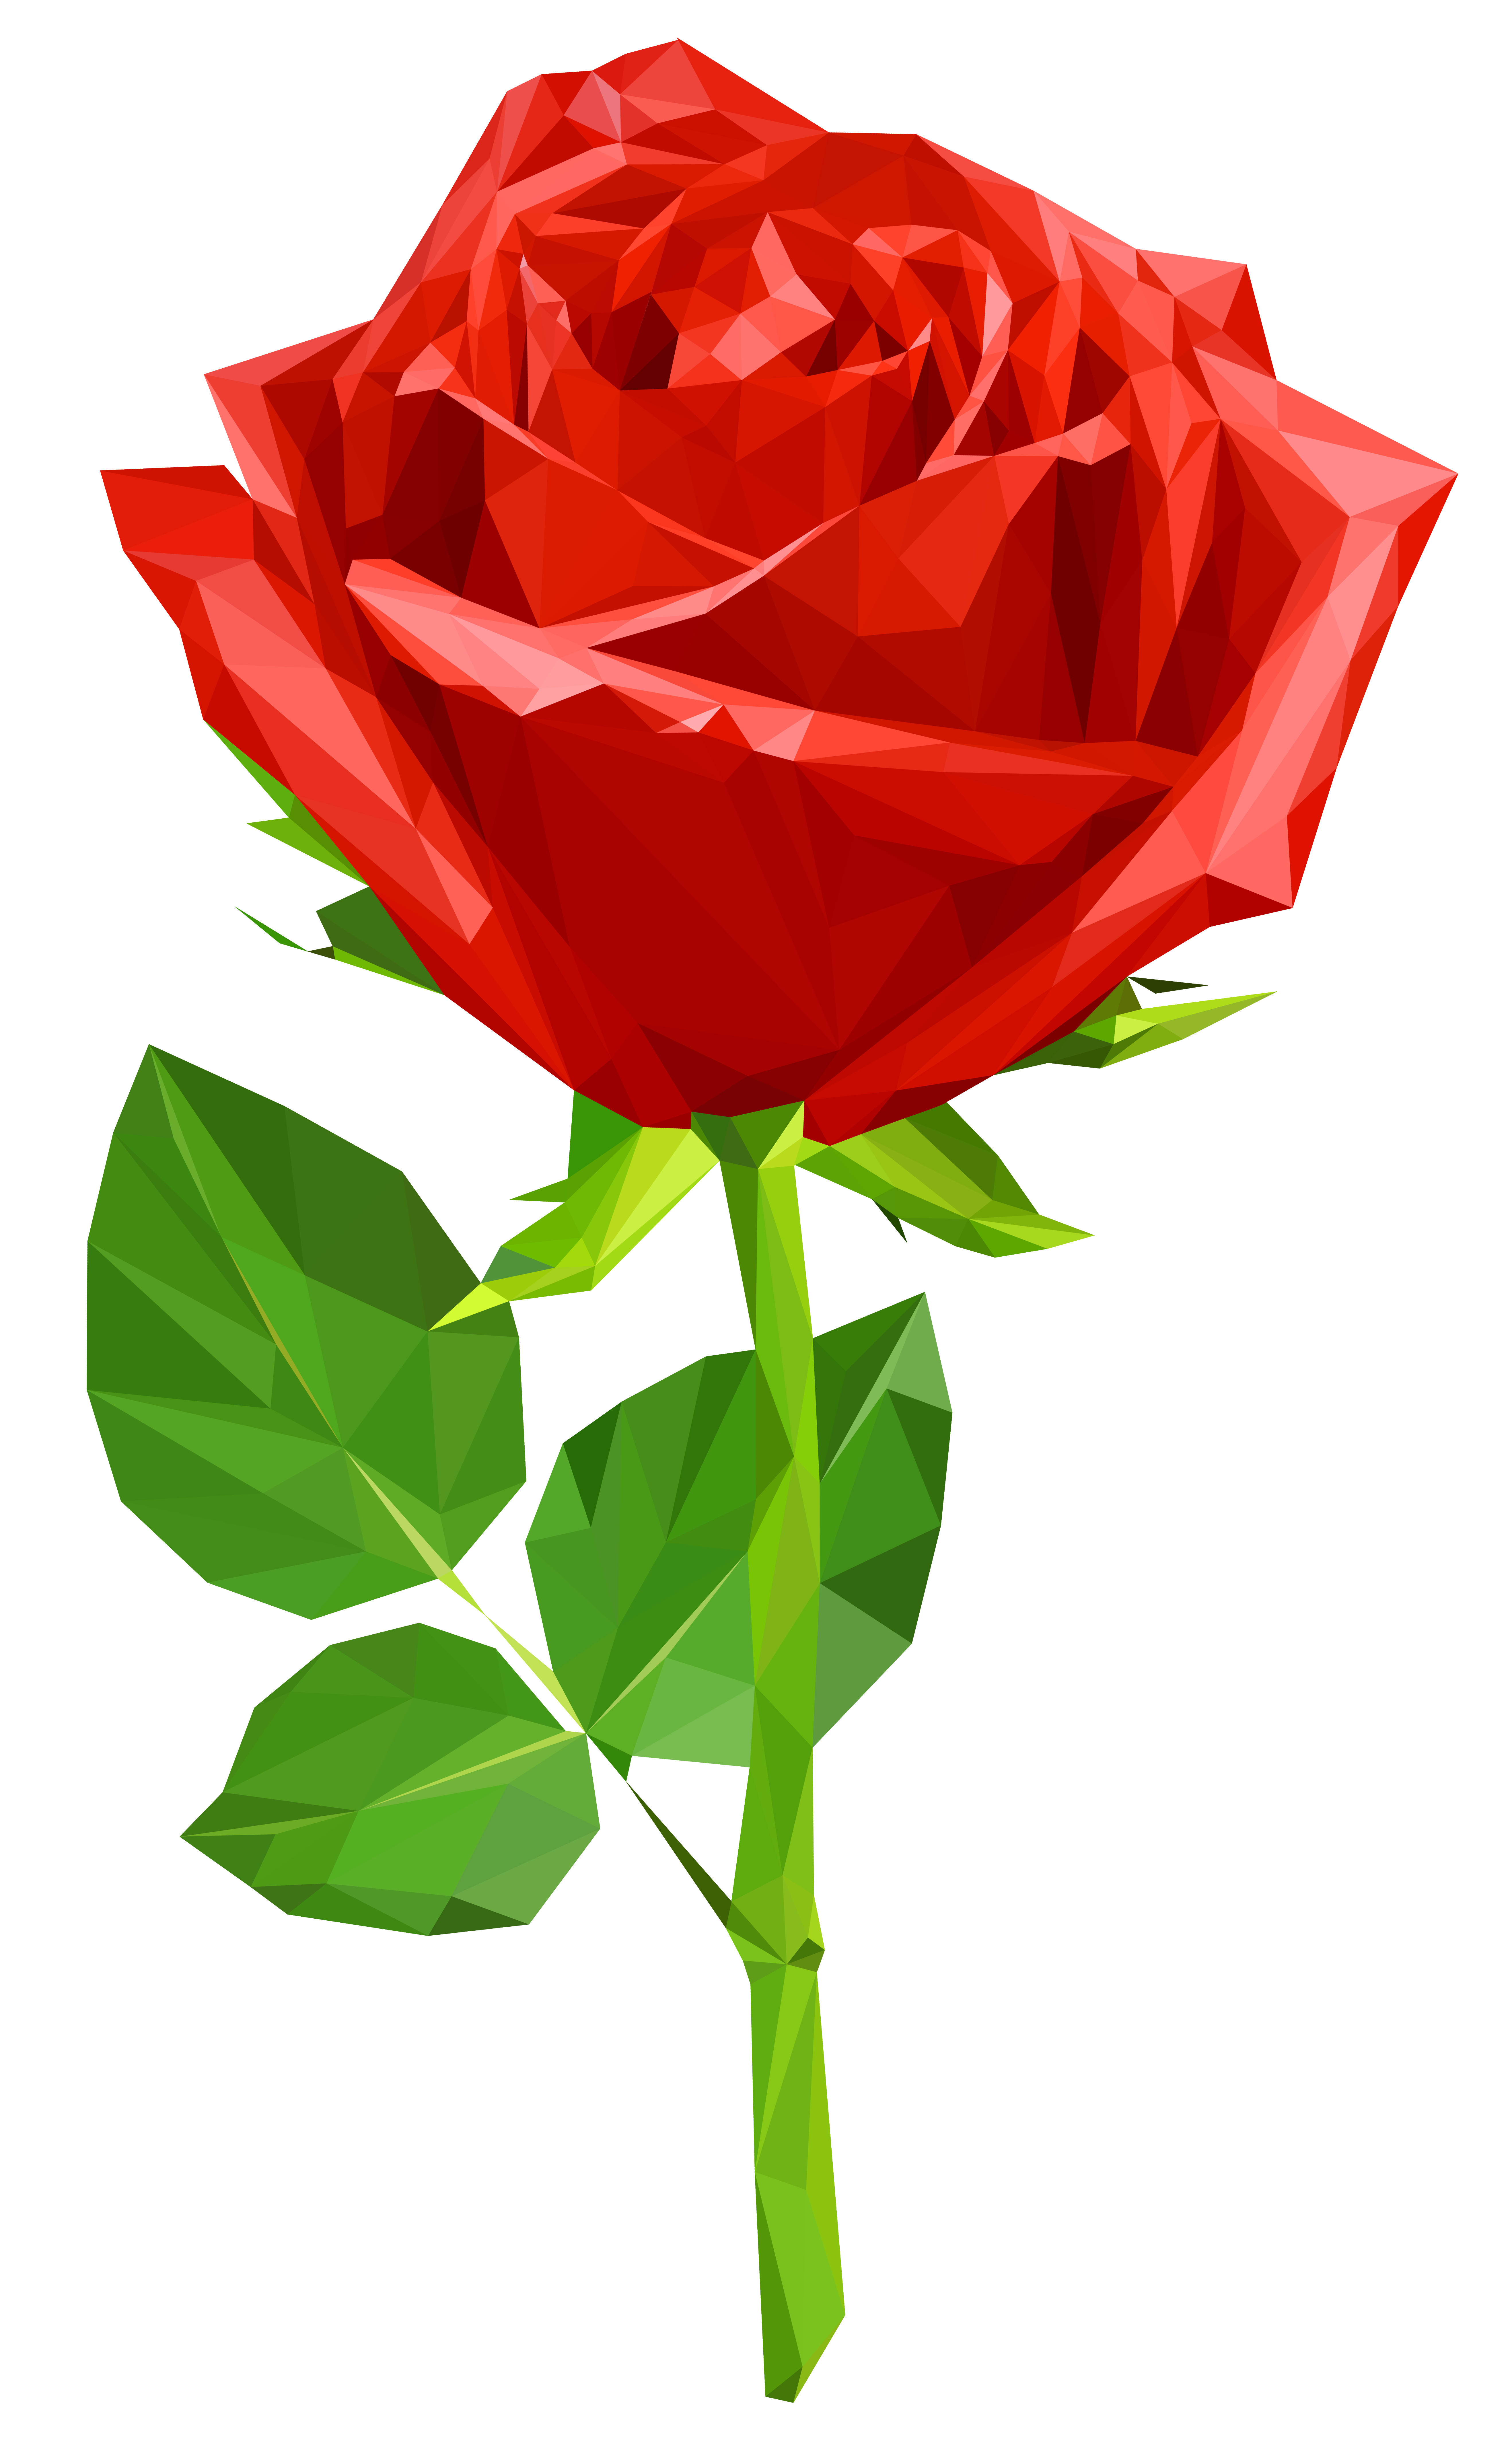 Crystal clipart real crystal. Red rose transparent png